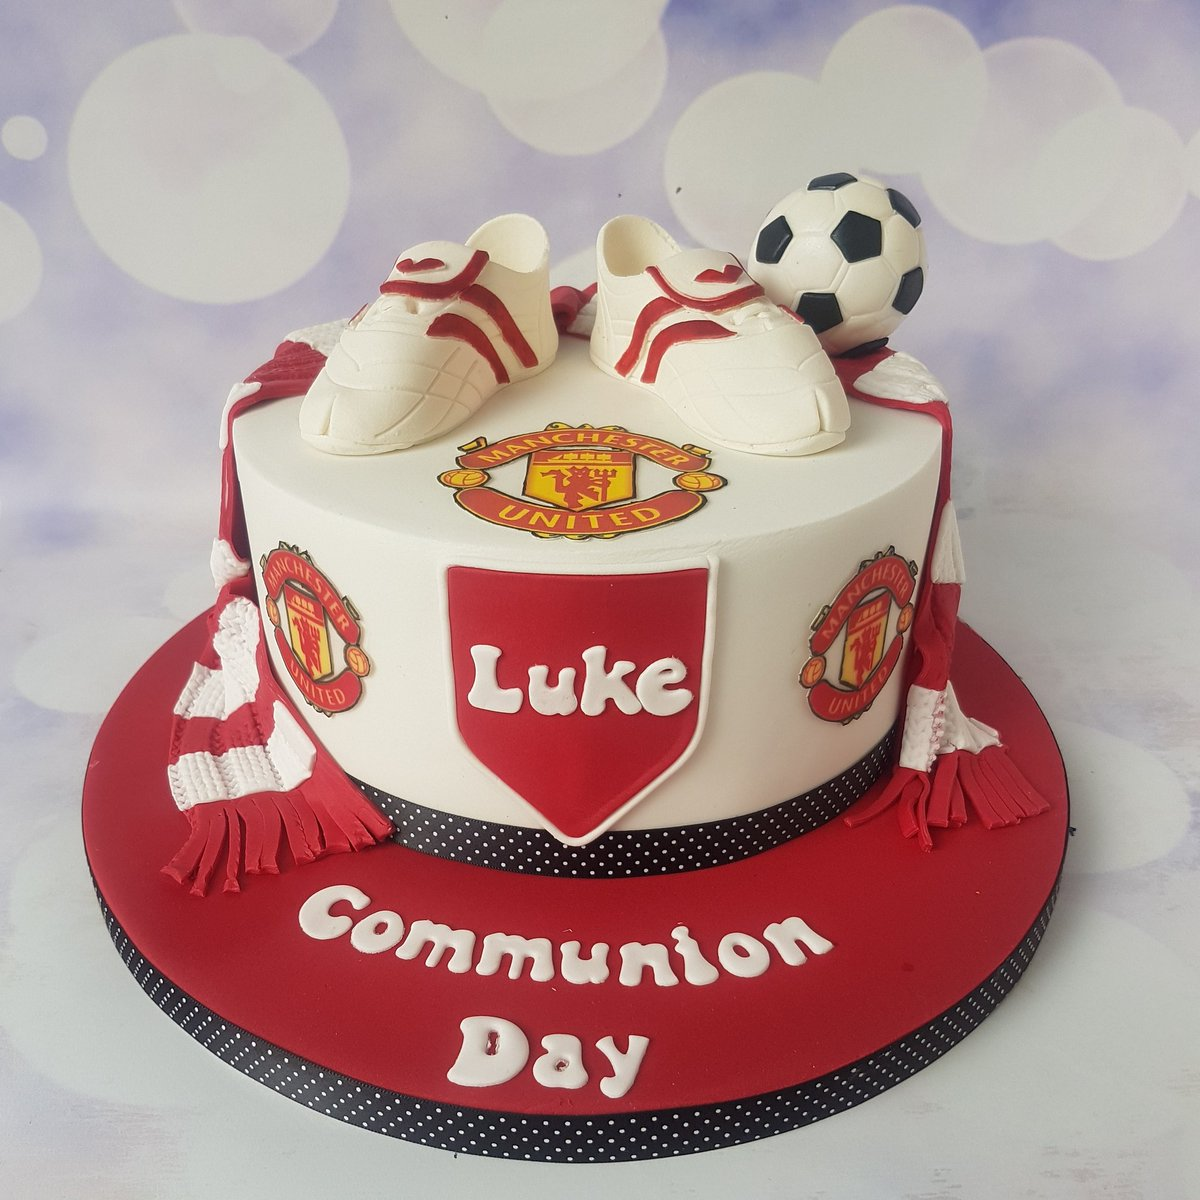 lily belles cakes on twitter manchester united cake for luke s communion day mufc cakes lilybellescakes lily belles cakes on twitter